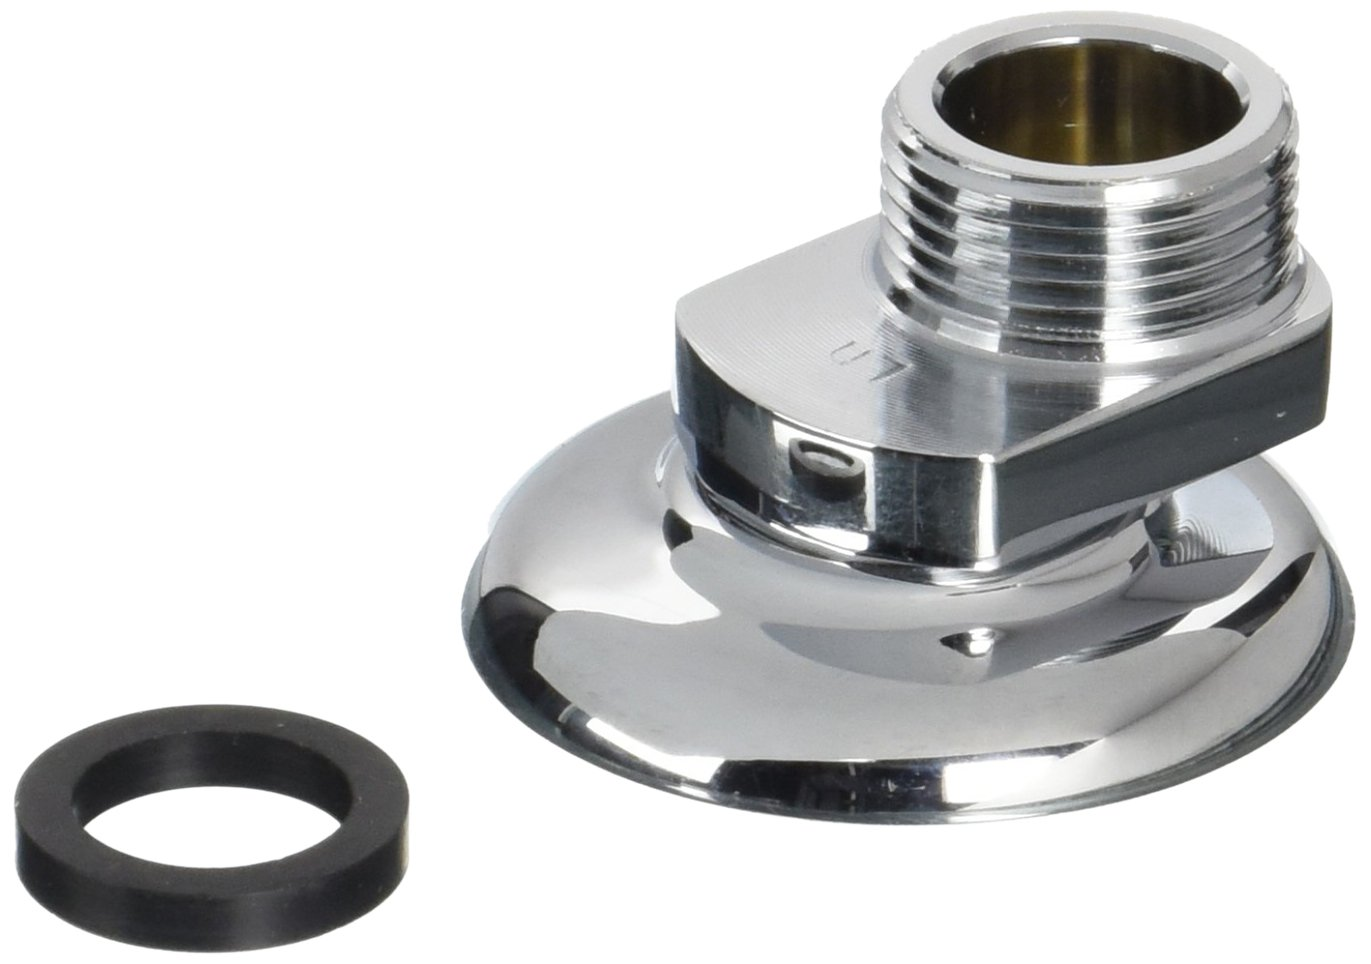 Peerless RP54803 Adjustable Offset Connector, Gasket Seal and Trim, Chrome